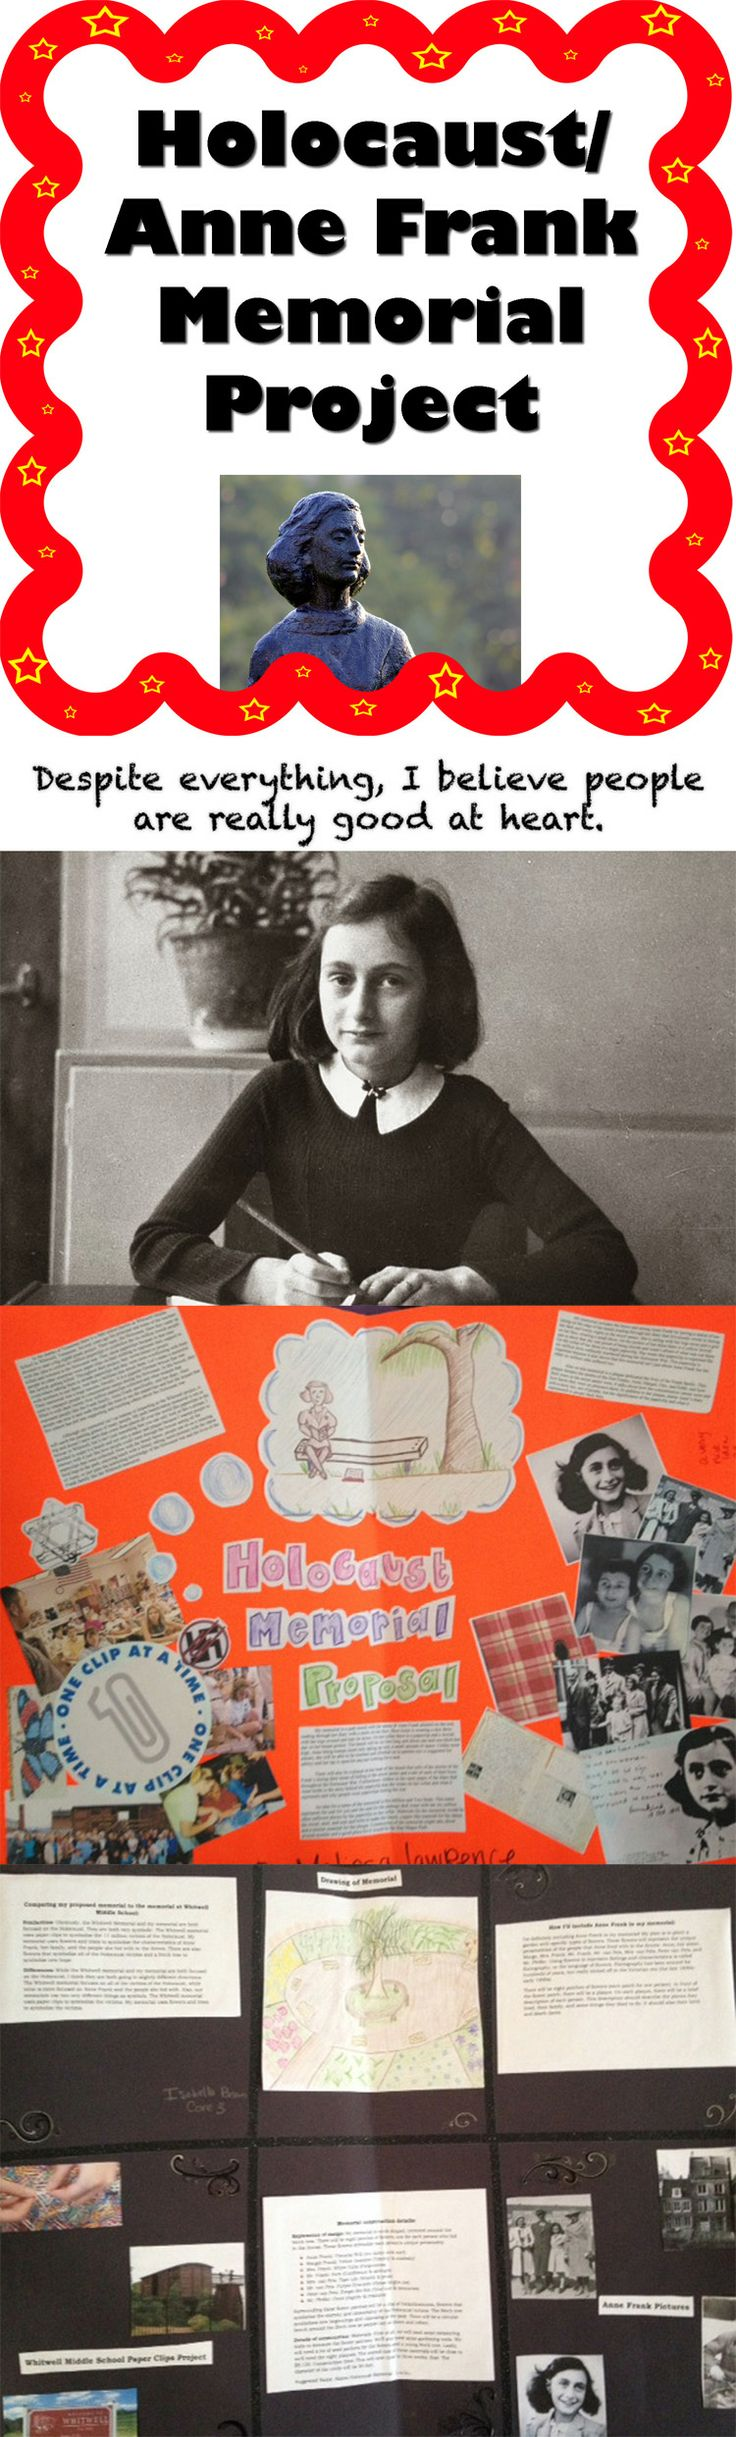 best images about anne frank anne frank museums holocaust diary of anne frank memorial project